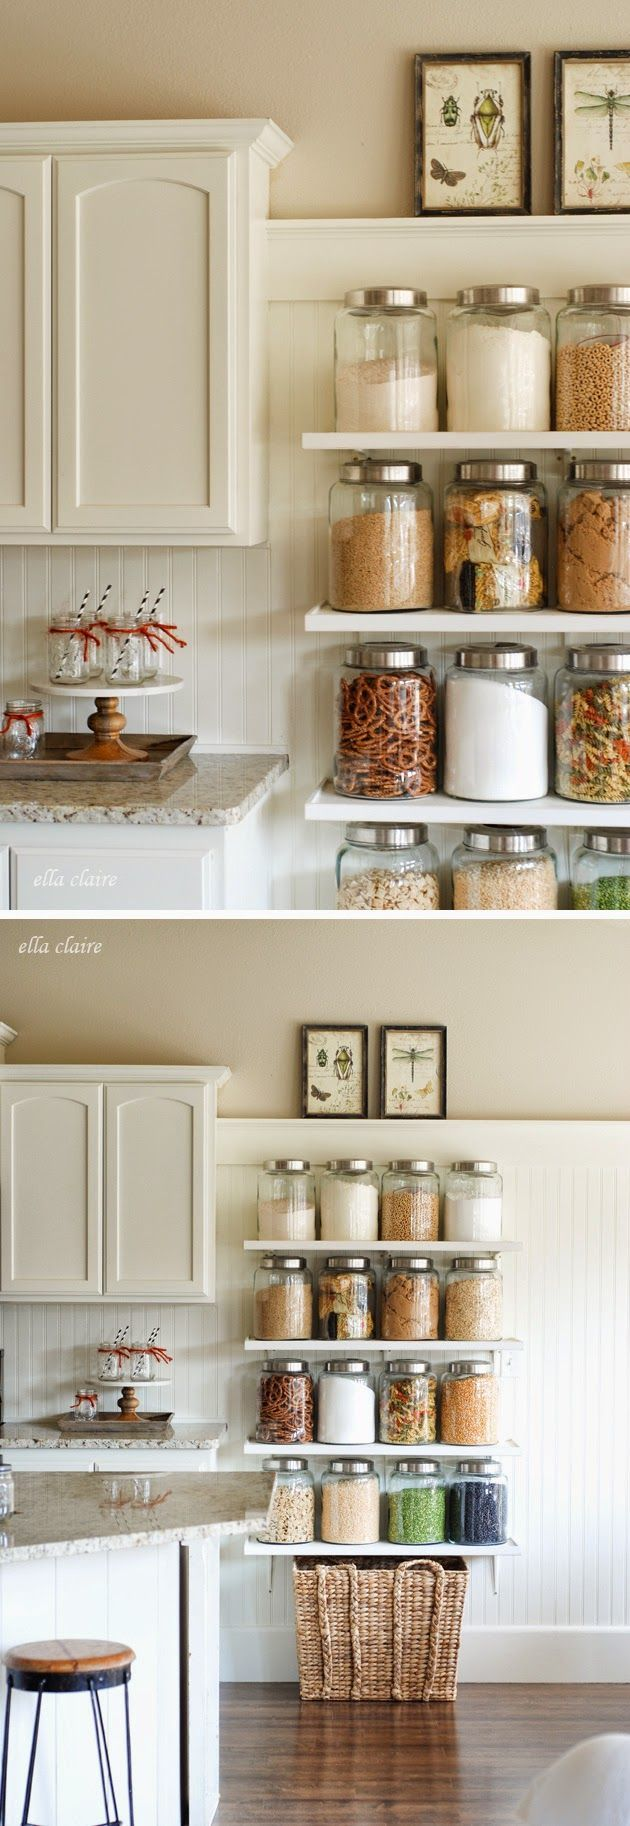 diy country store kitchen shelves glass canisters shelving and